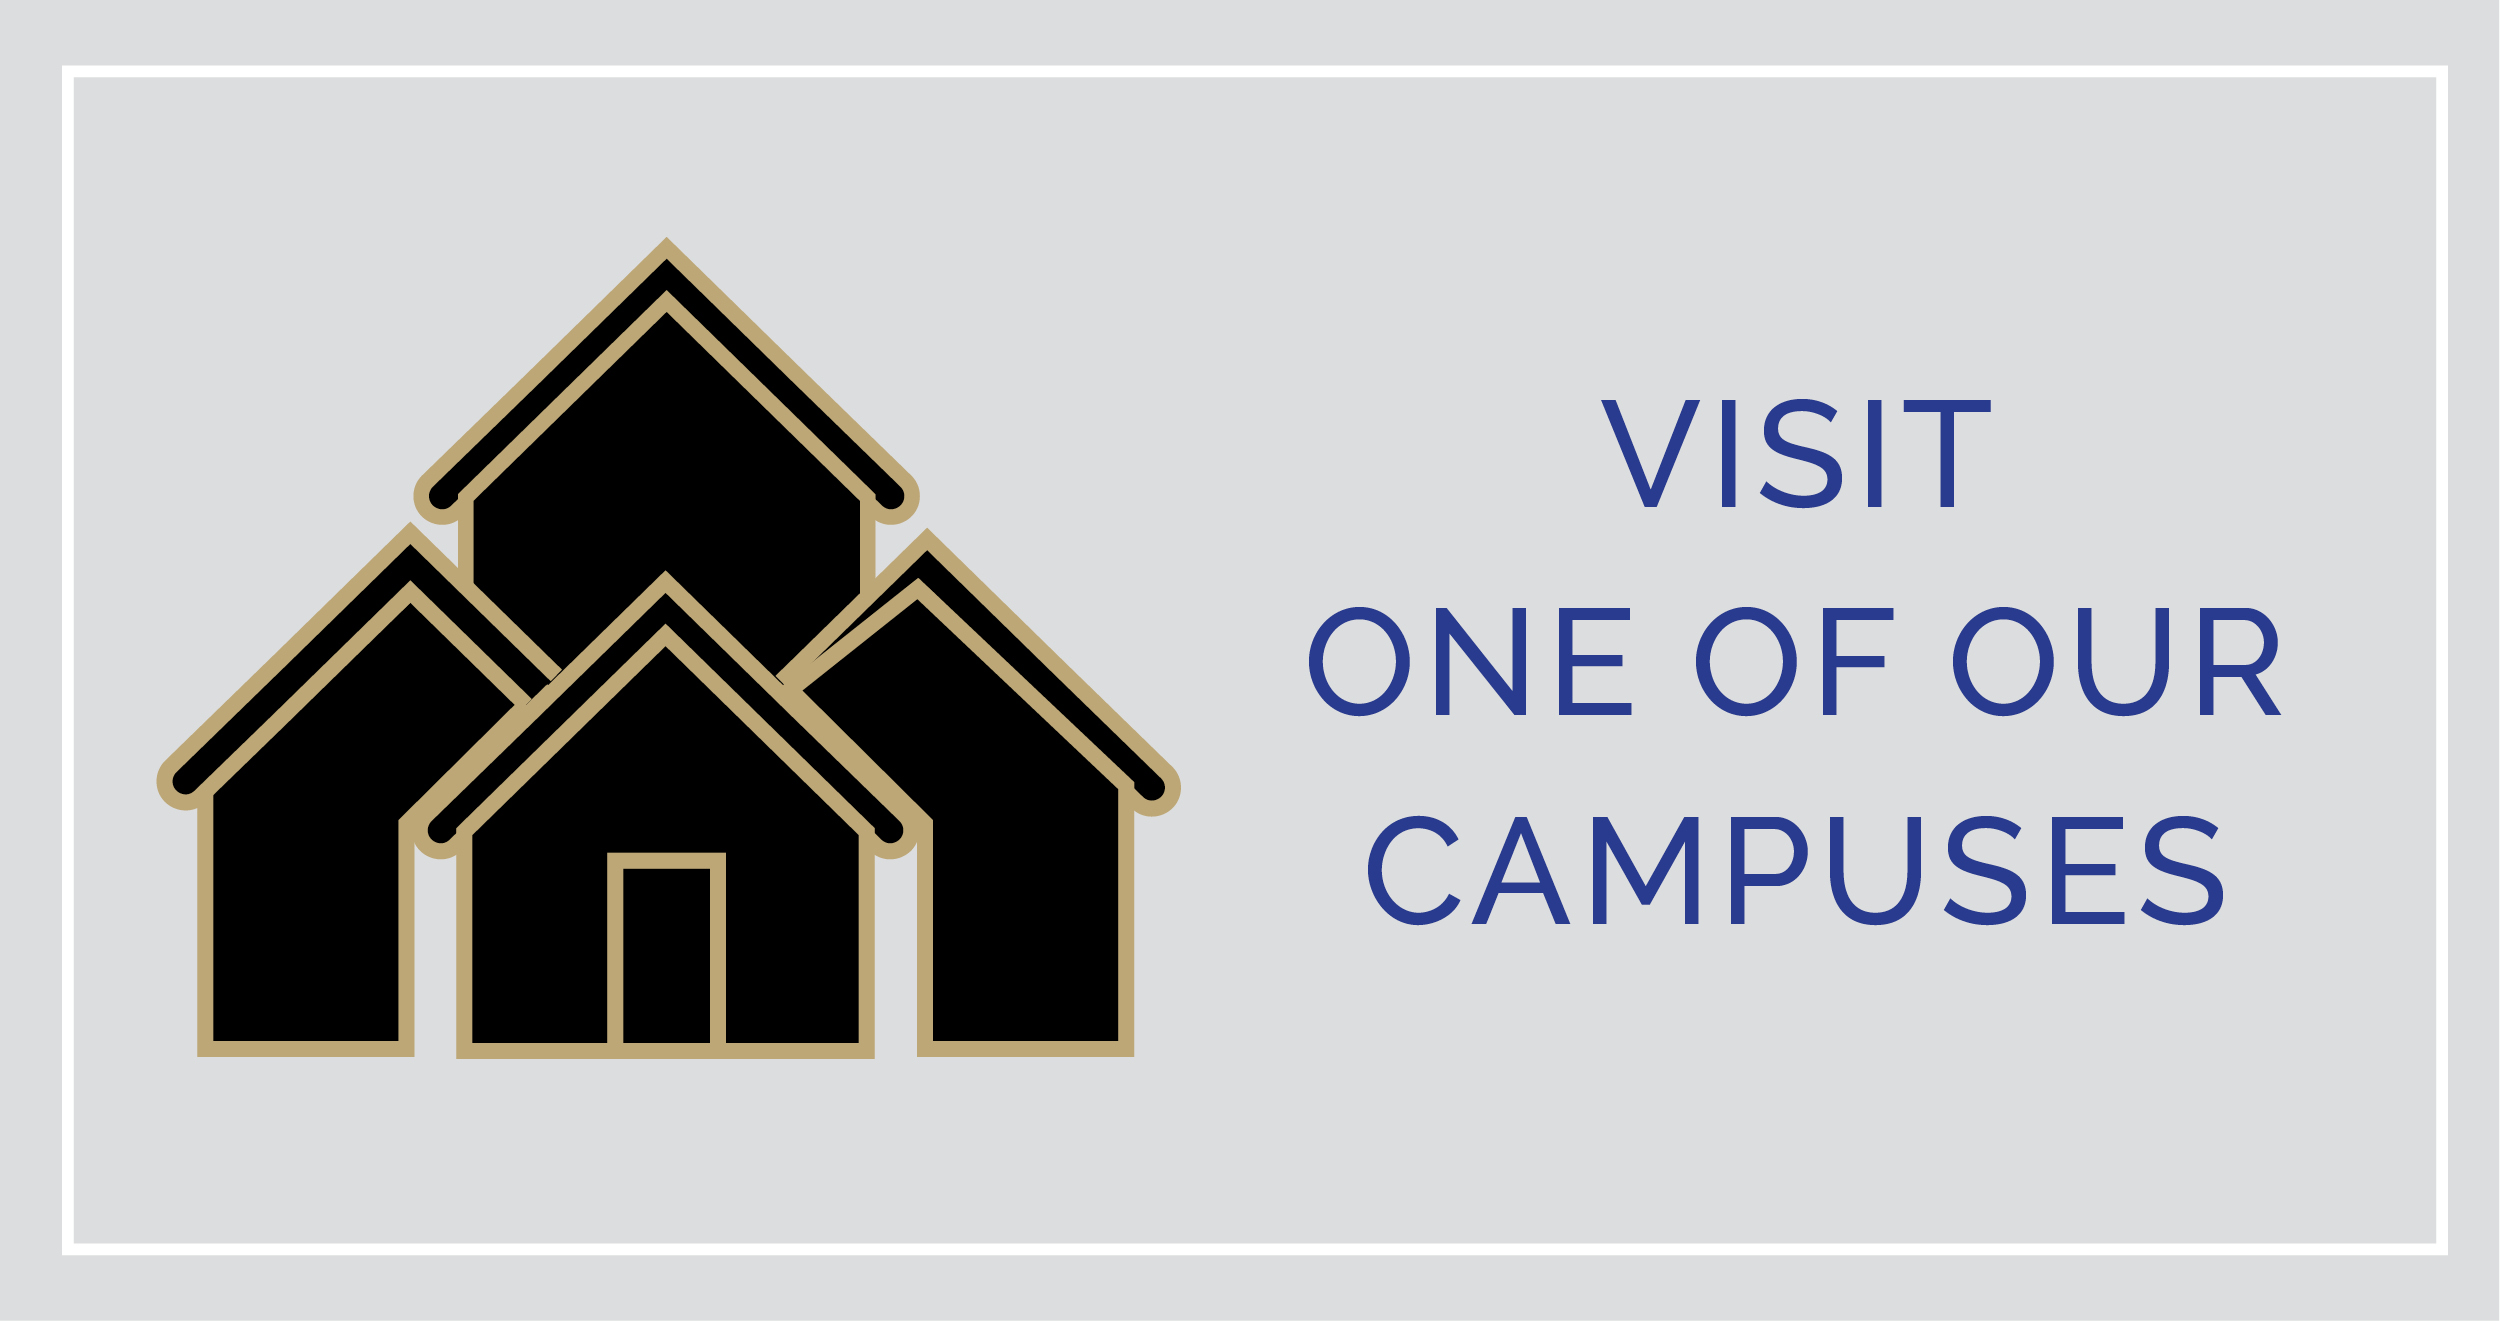 Visit One of Our Campuses